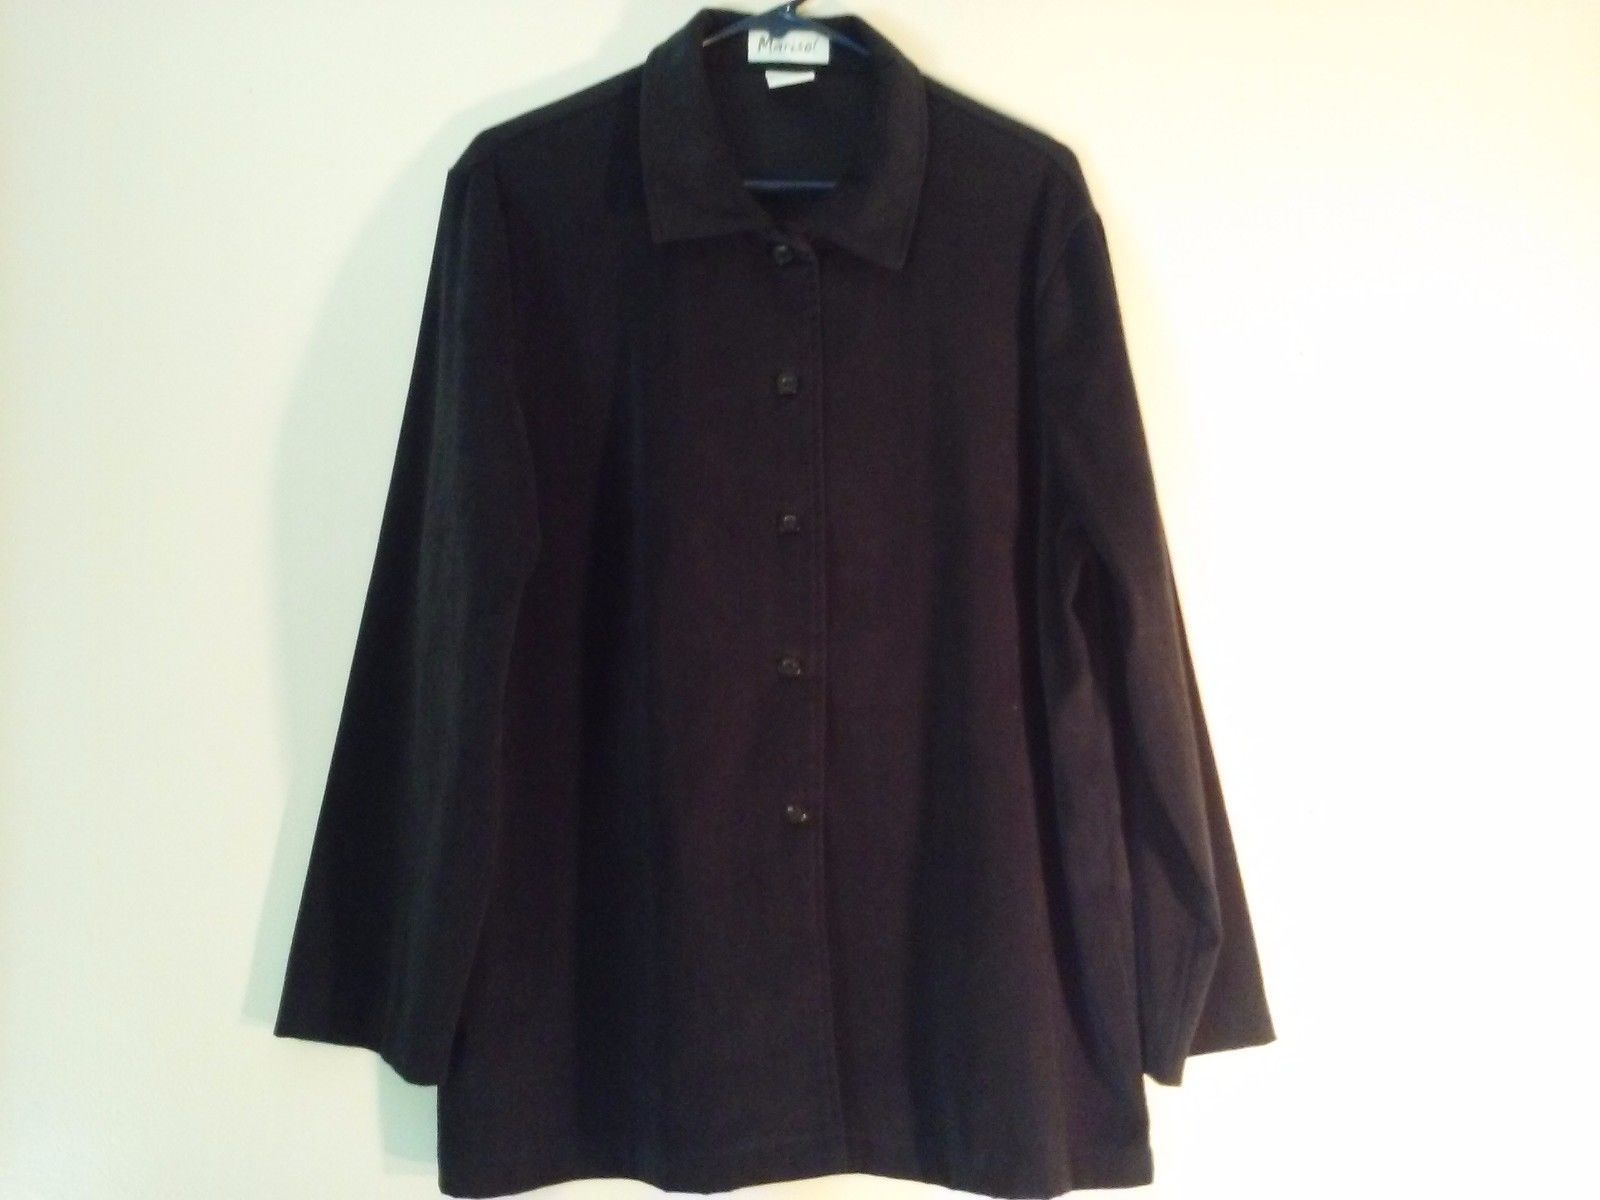 Great Used Condition Marisol XL Polyester Blend Black Buttoned Collared Shirt